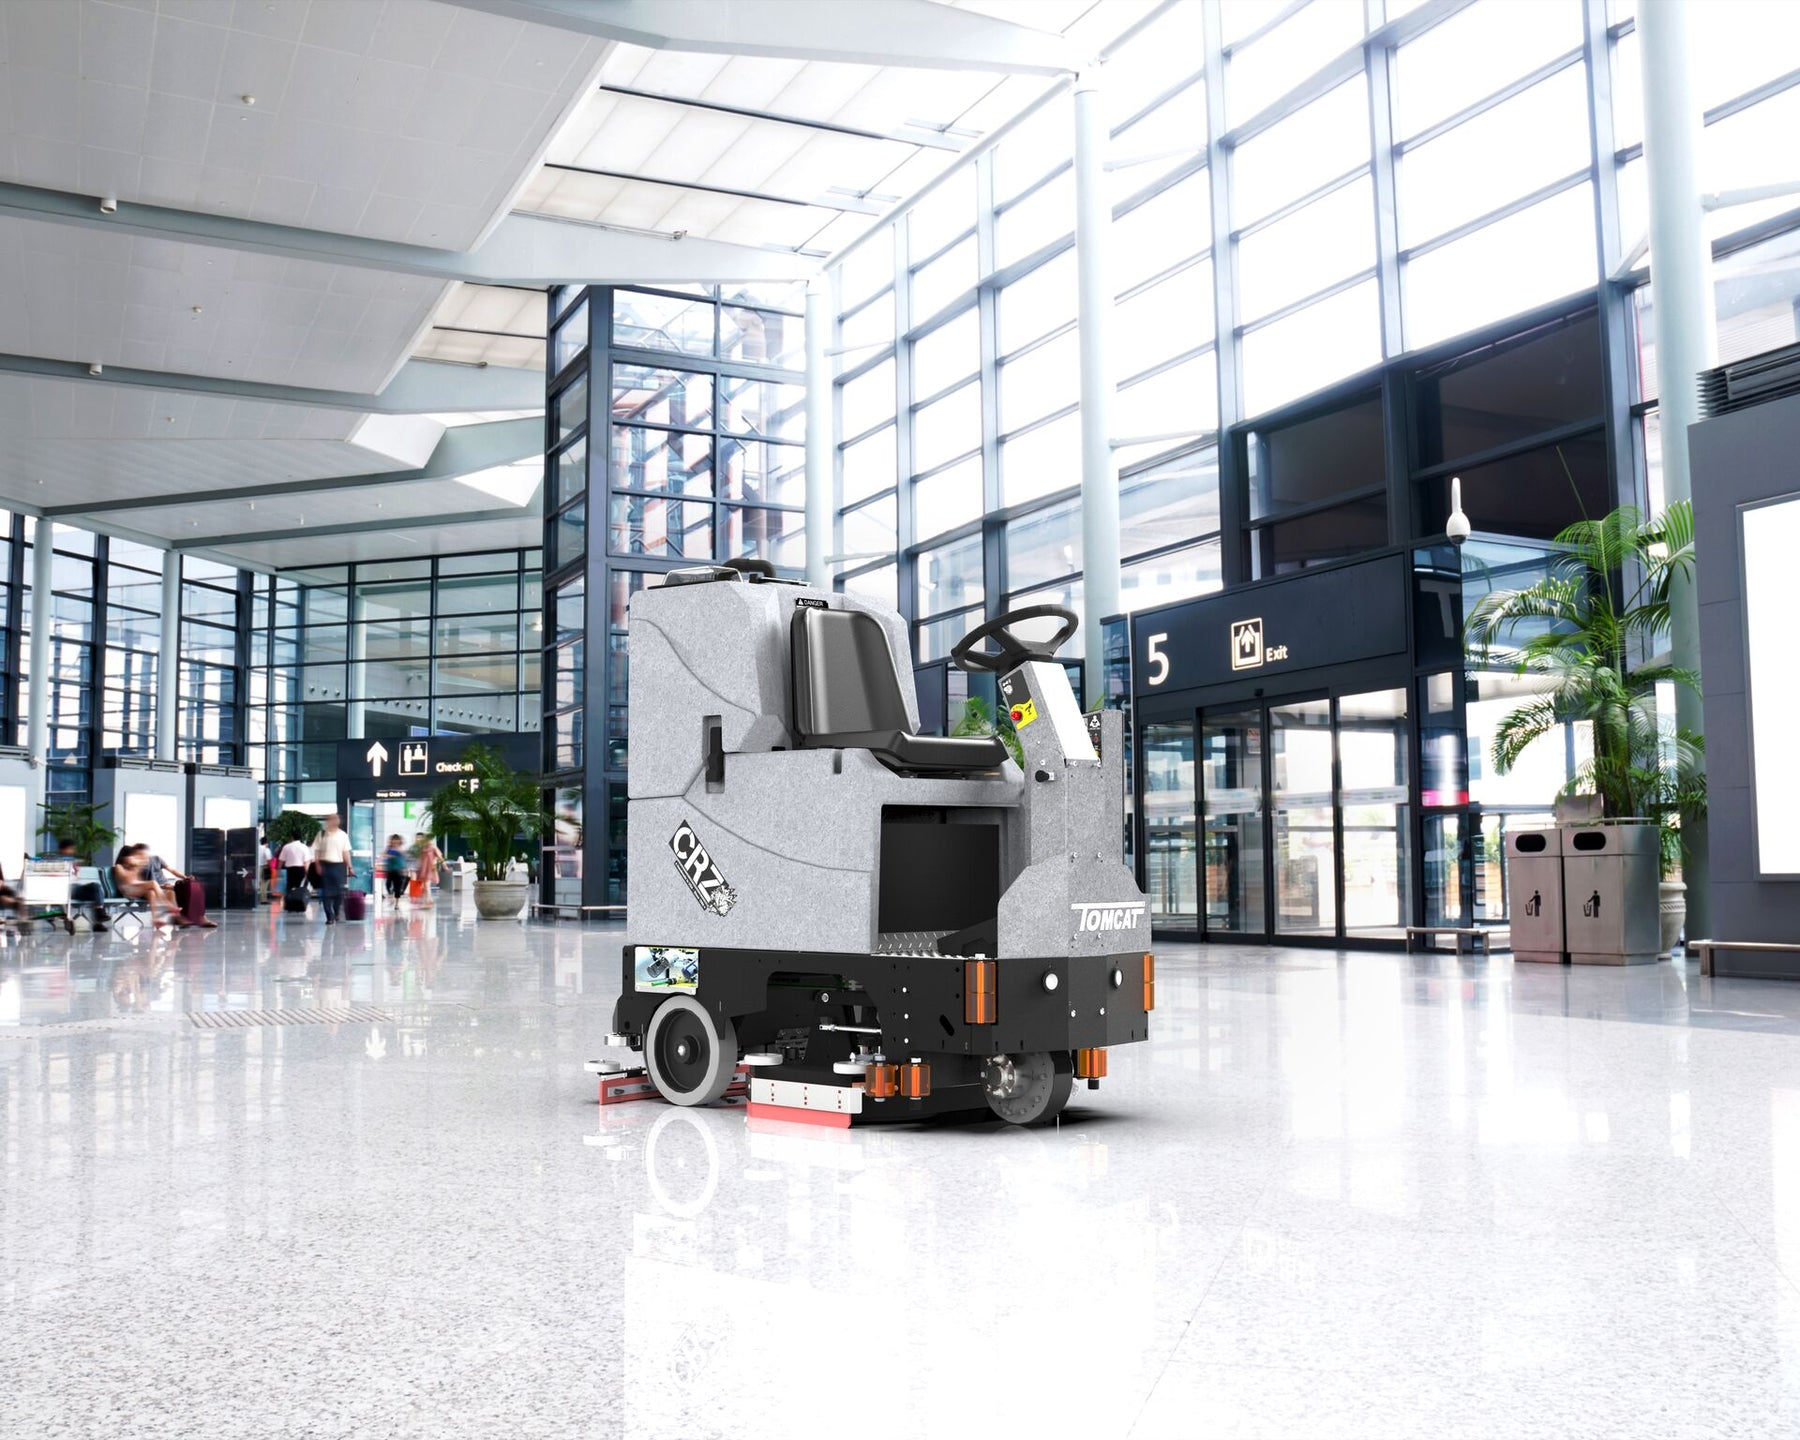 Tomcat's CRZ Rider Scrubber-Sweepers are tough, compact scrubbers that offer the great productivity of Rider machines but with better maneuverability than Walk Behinds.